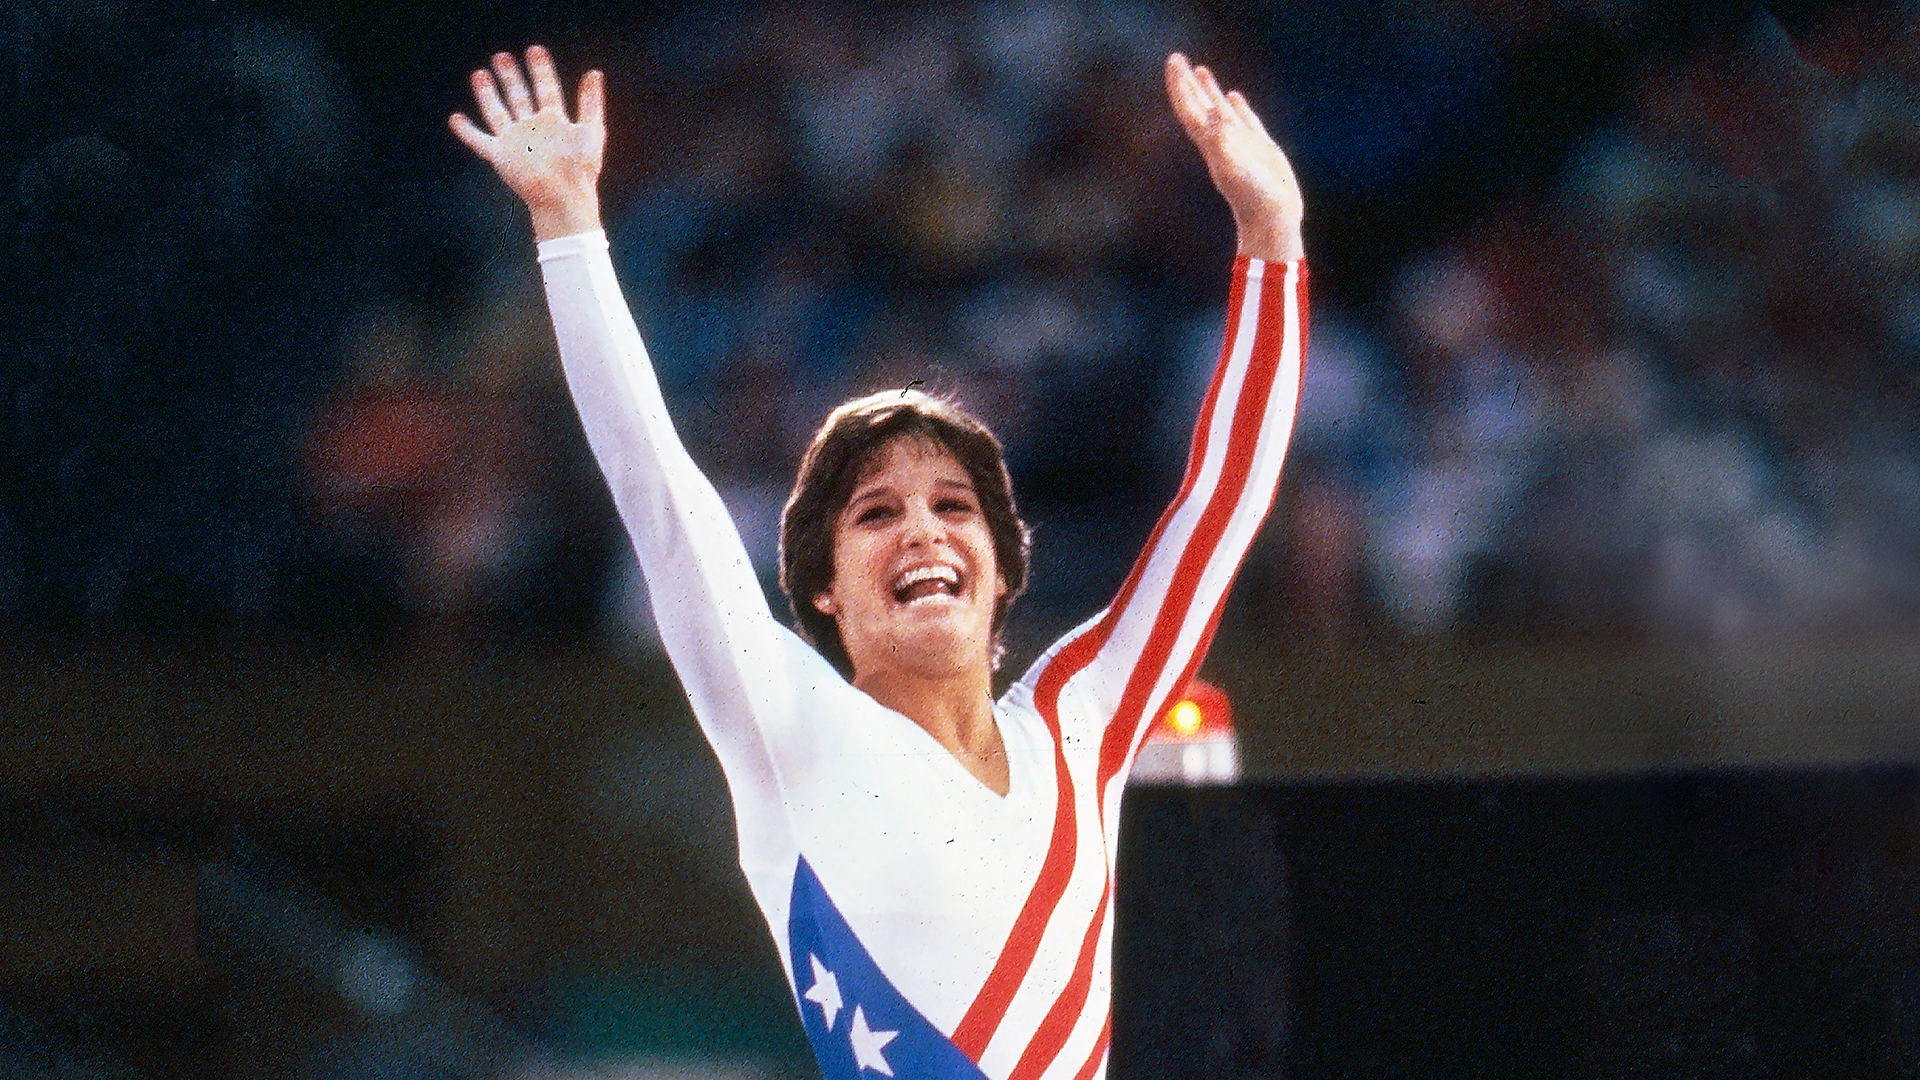 January 24, 1968: Mary Lou Retton Was Born and Became the First American Woman to Win the All-Around Gymnastics Event at the Olympics